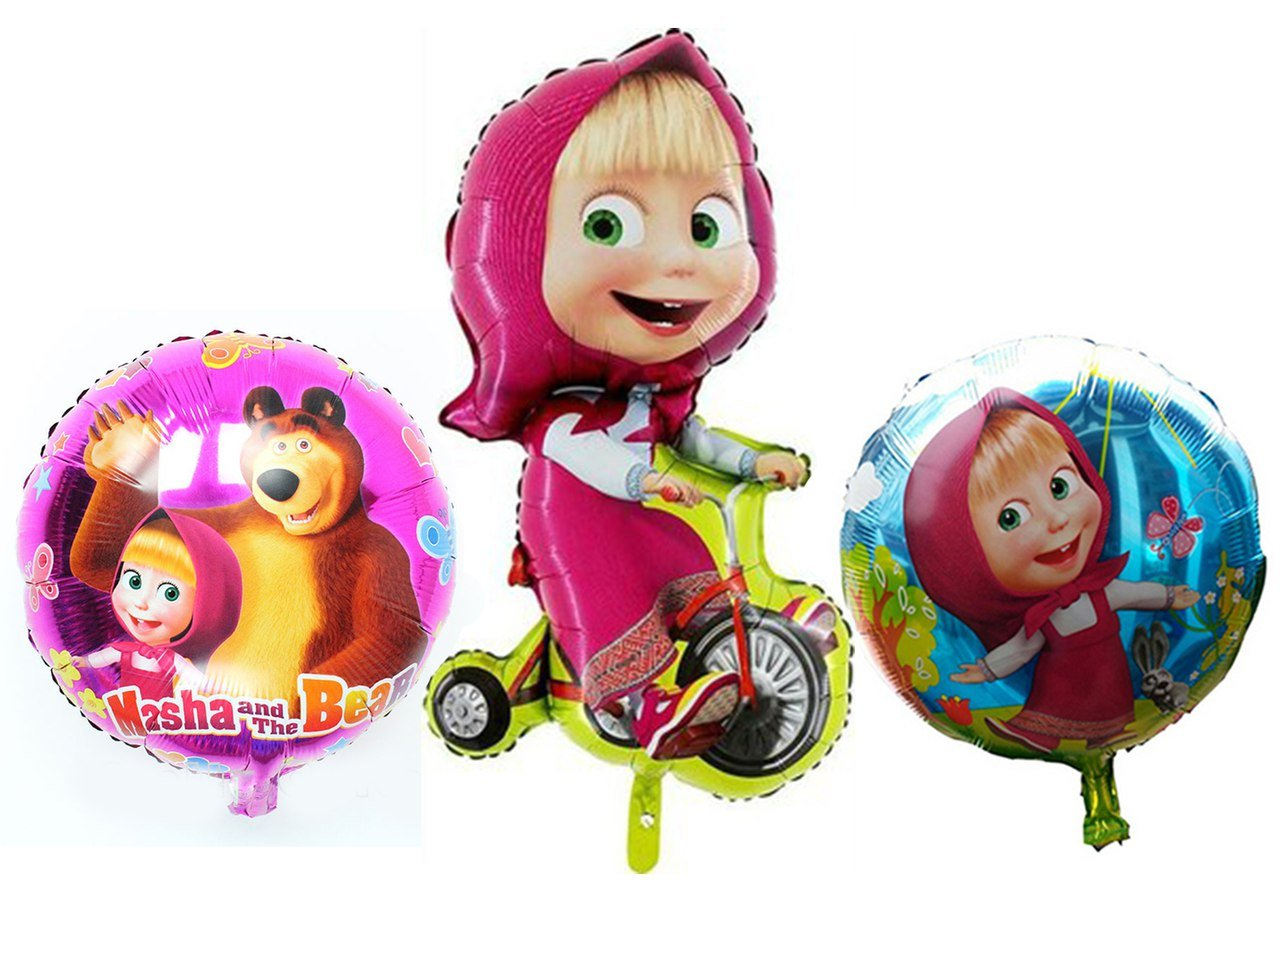 15.3-39inch 3Psc Metal Inflatable Balloon Masha and Bear Holiday Childrens Kids Party Party Favor Party Supplies Invitation Deco Russian Cartoon